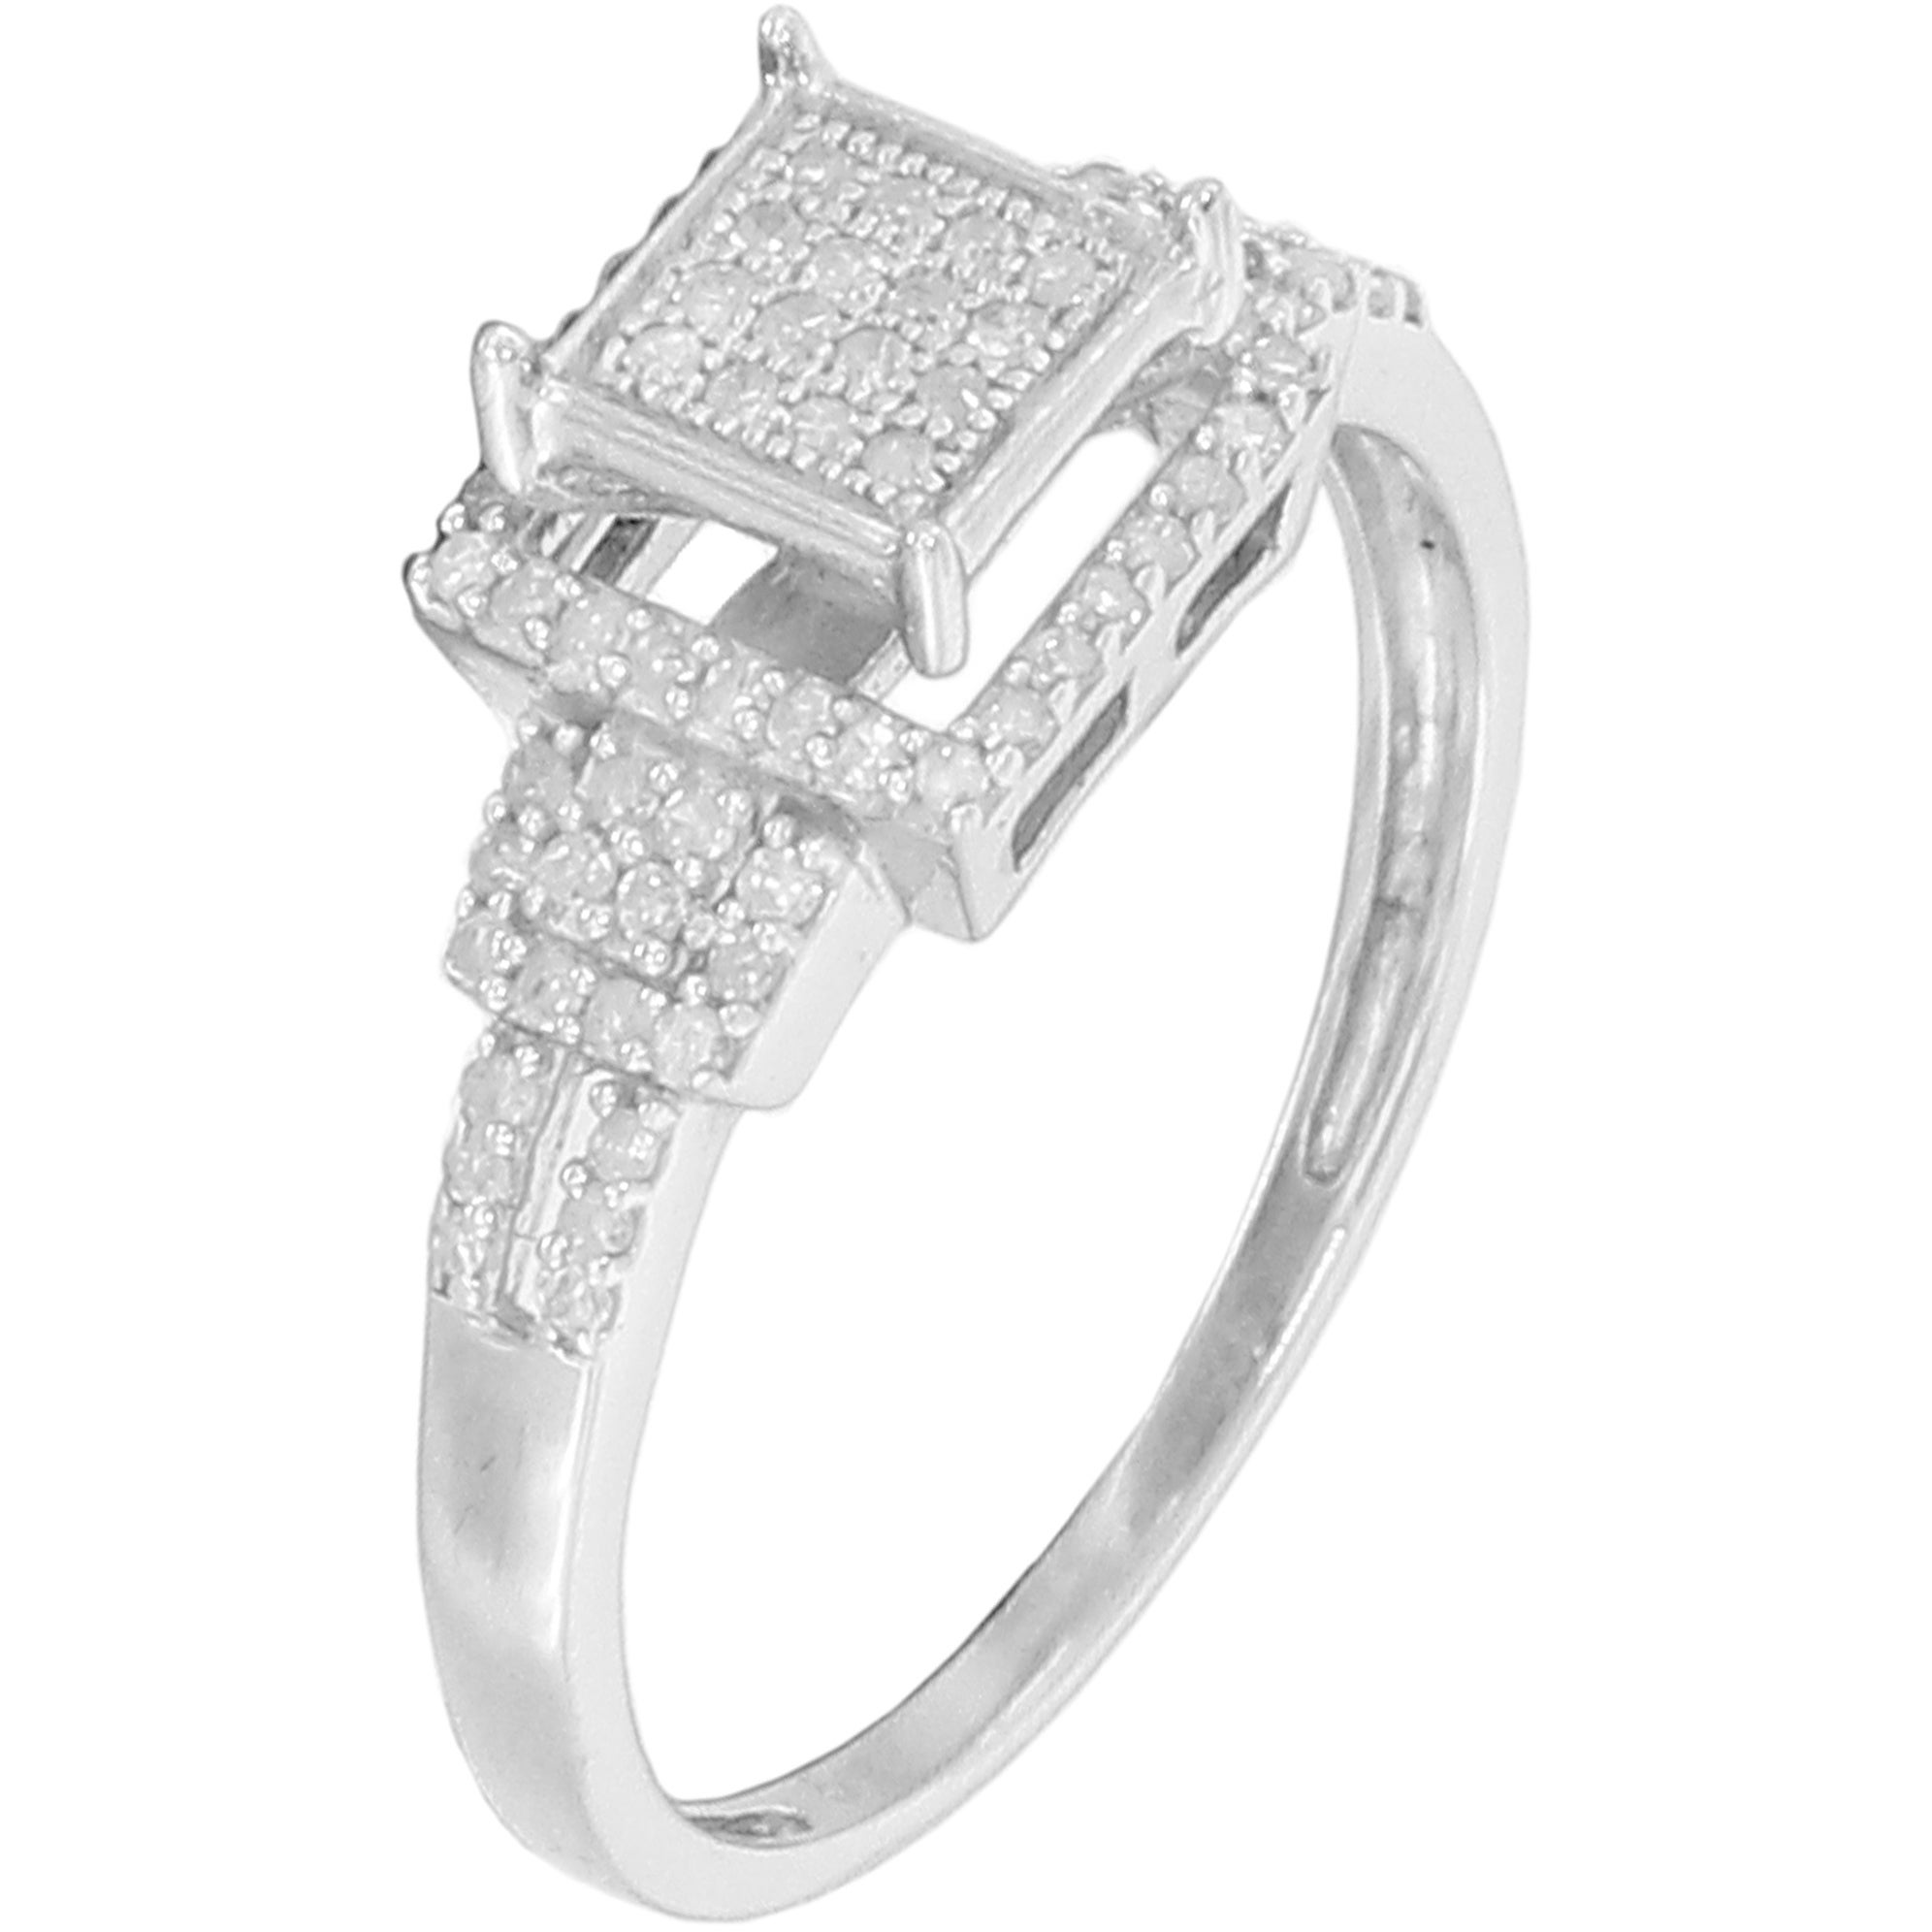 3 Diamond Promise Ring in Sterling Silver G-H,I2-I3 Size-7.25 1//20 cttw,